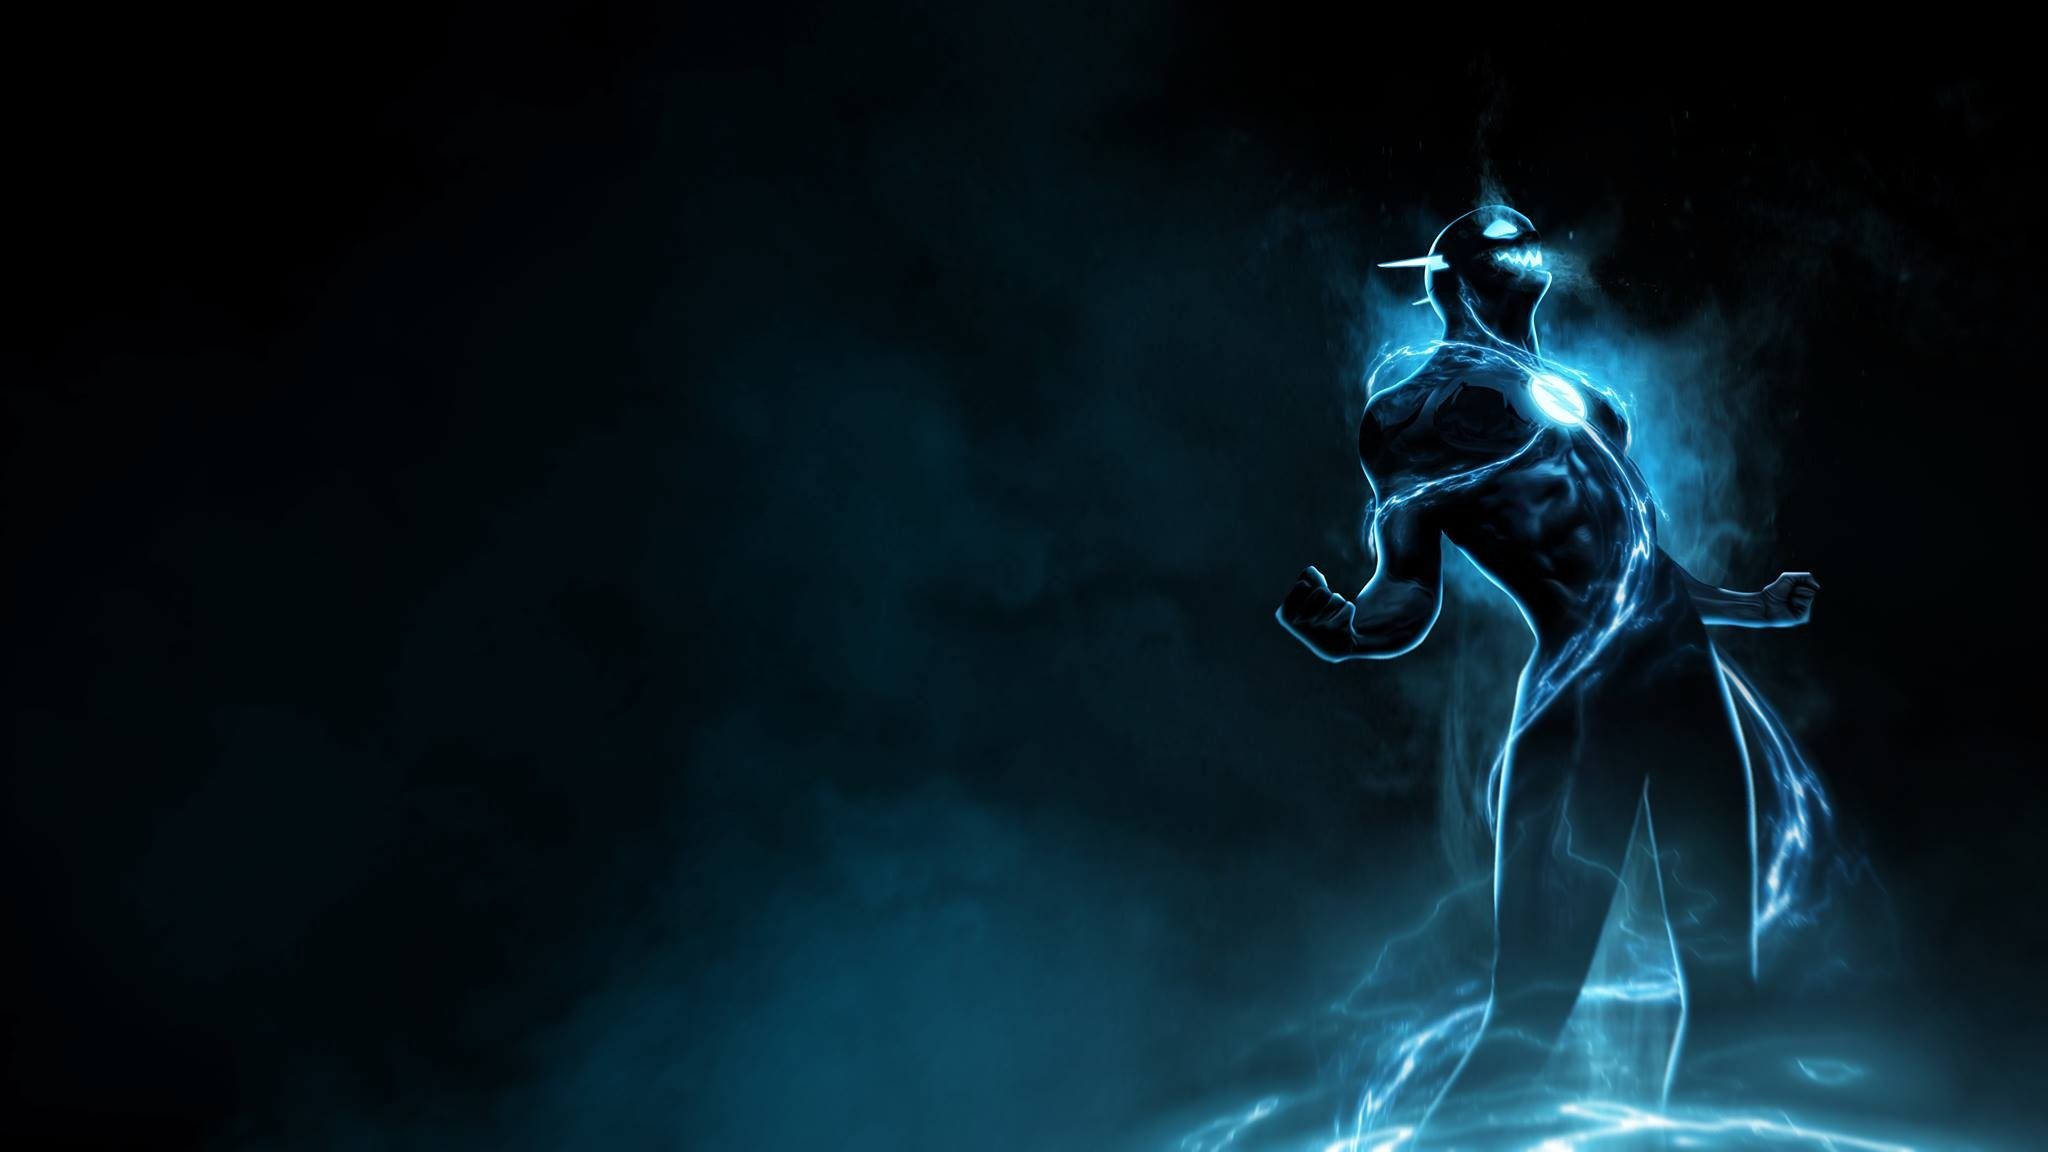 The Flash Wallpaper Zoom The Flash CW HD Wallpaper – Back Wallpapers